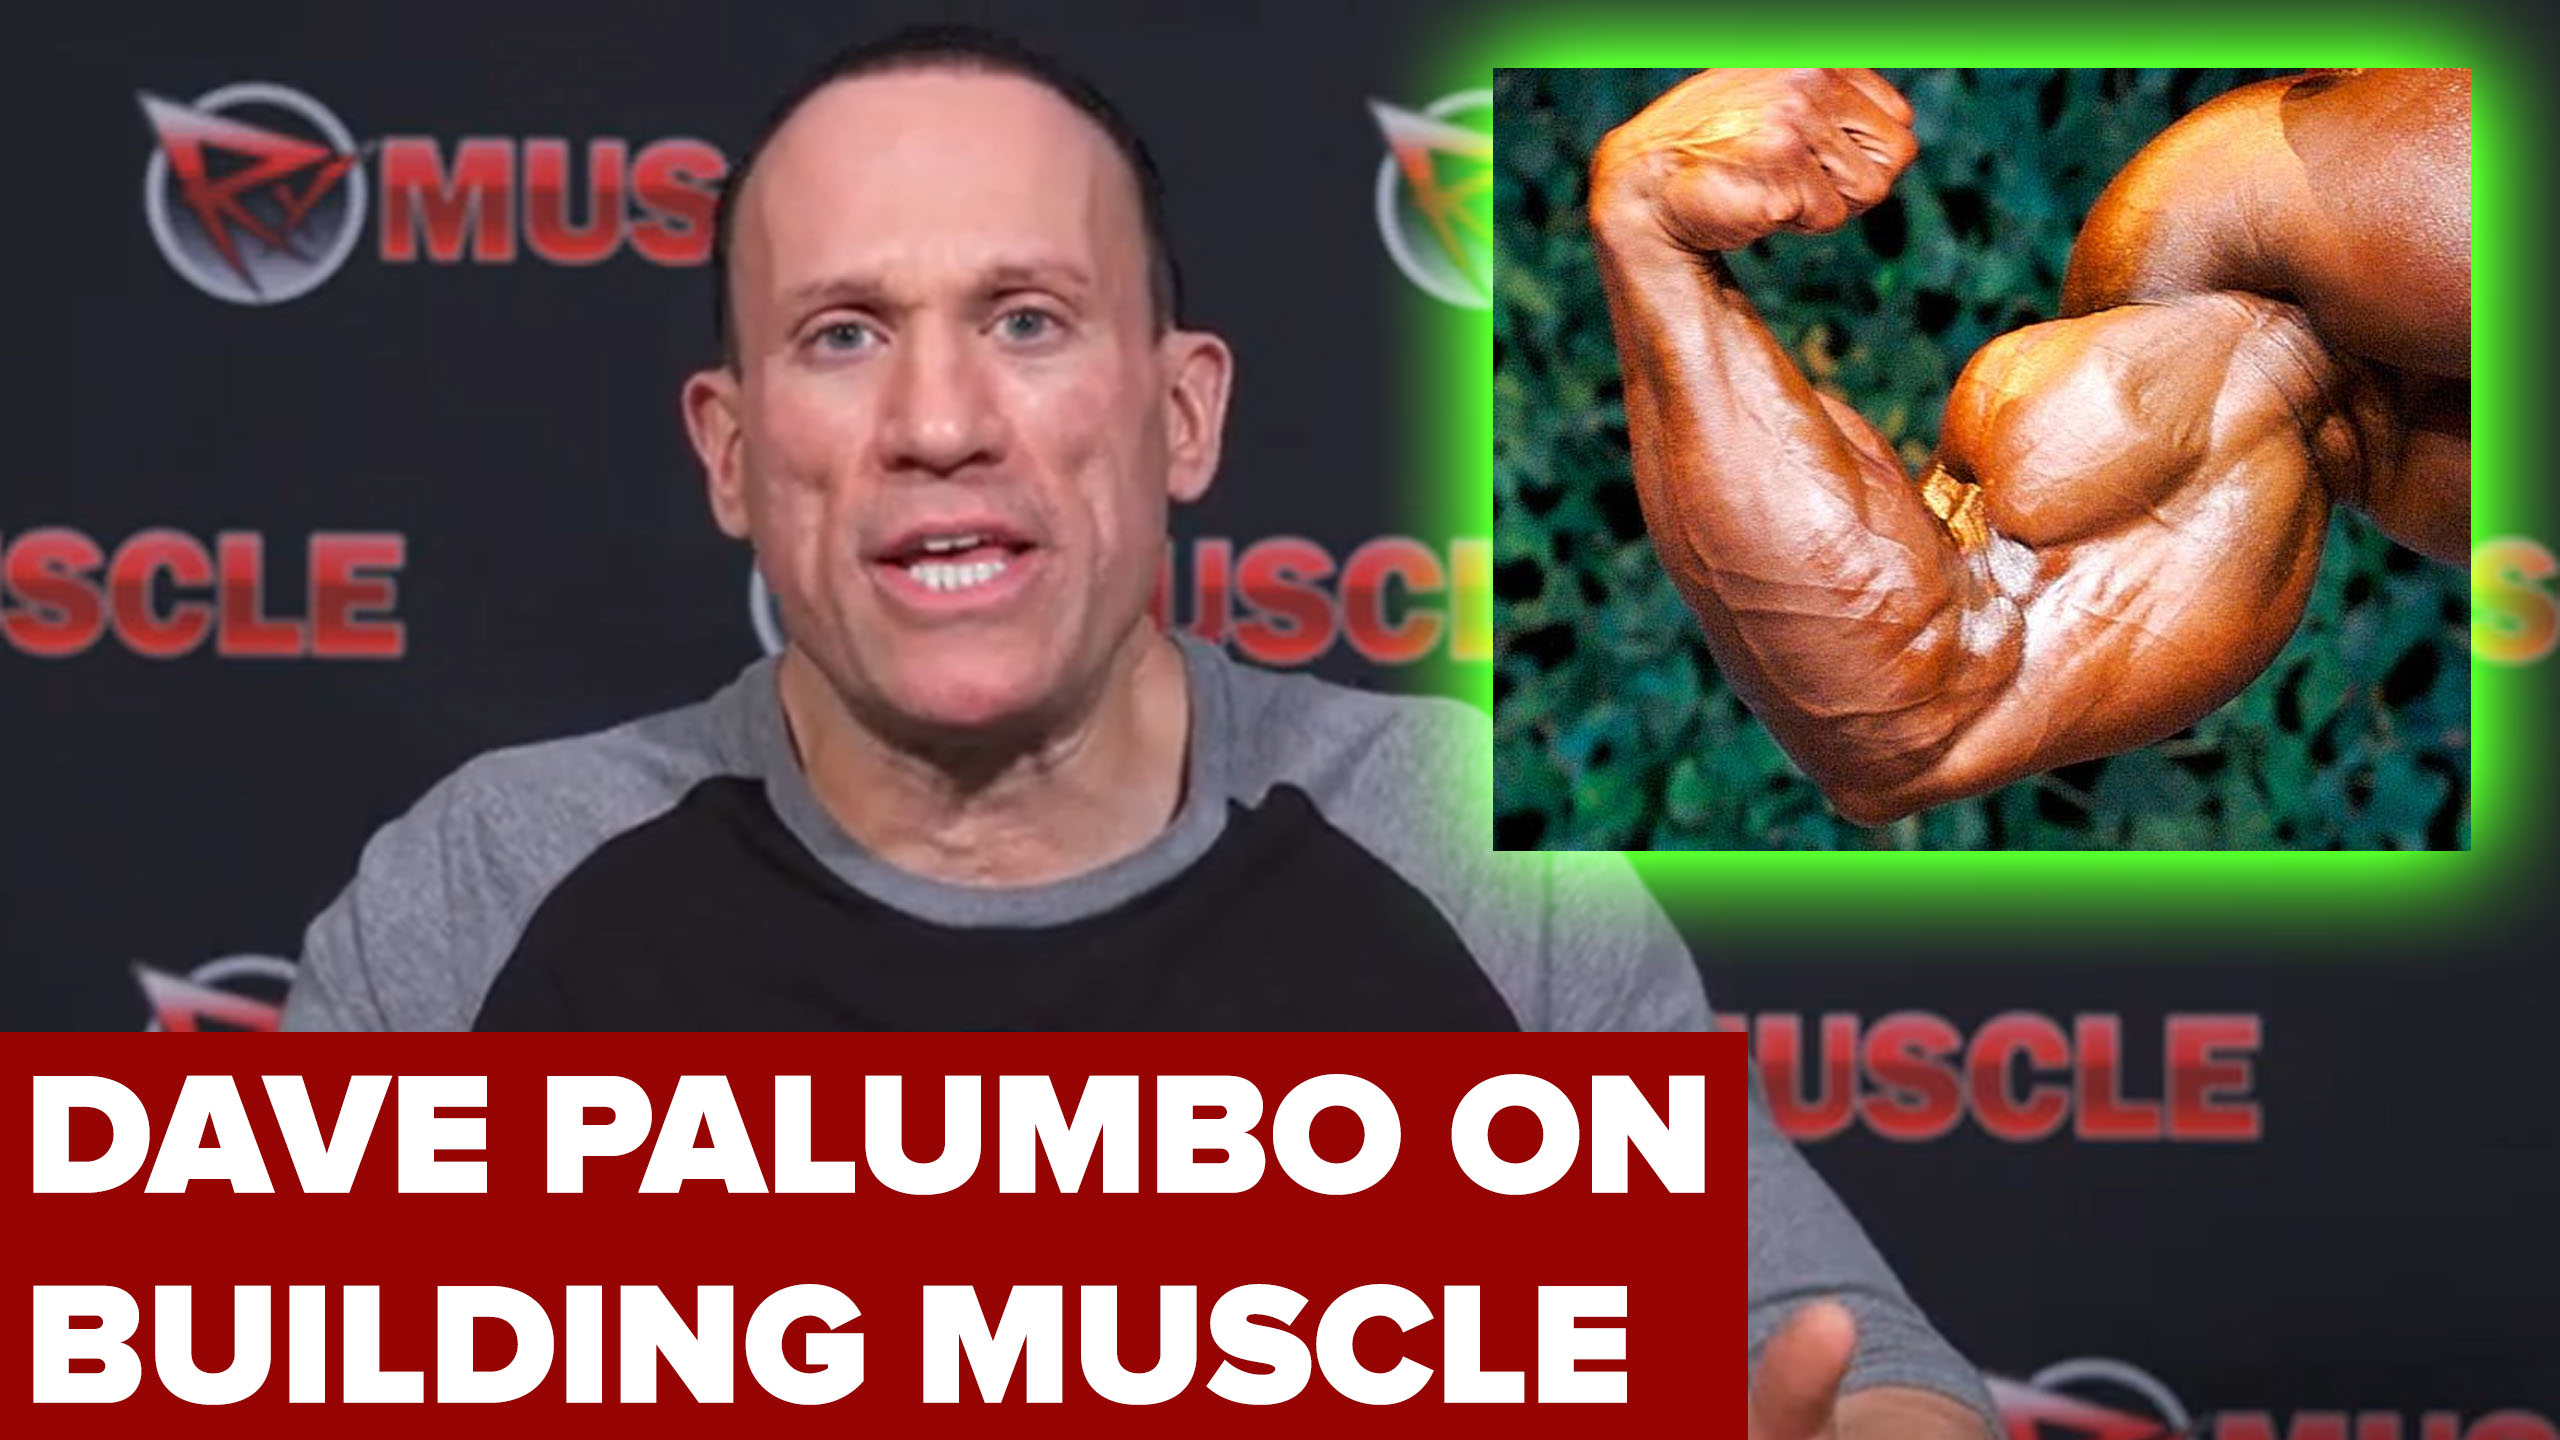 dave palumbo on building muscle